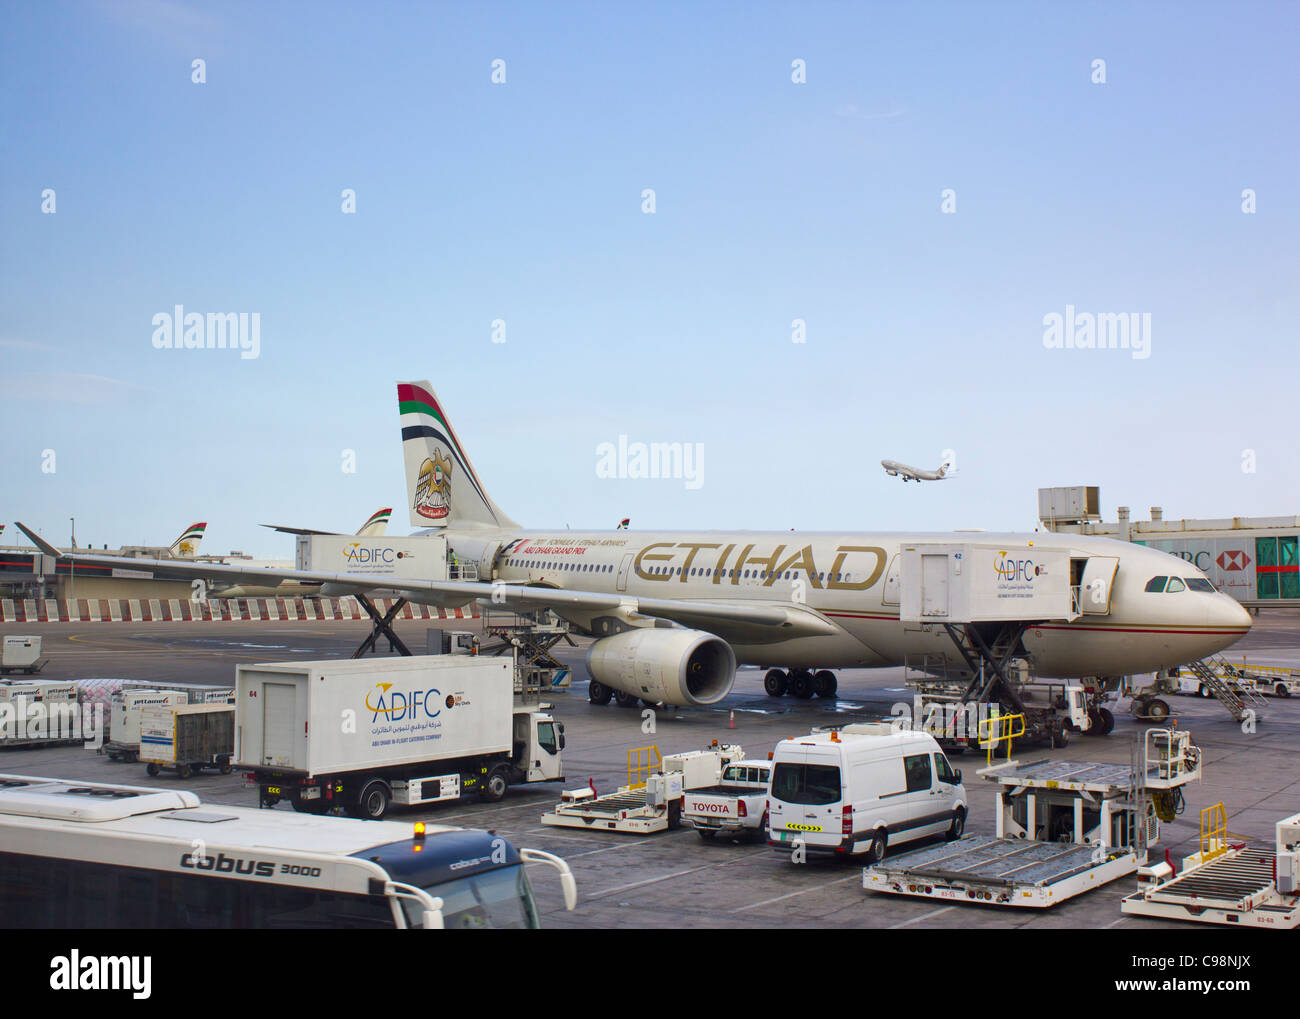 Airbus A330-200 Etihad airways plane at Terminal 1, Abu Dhabi airport, United Arab Emirates; another Etihad plane - Stock Image